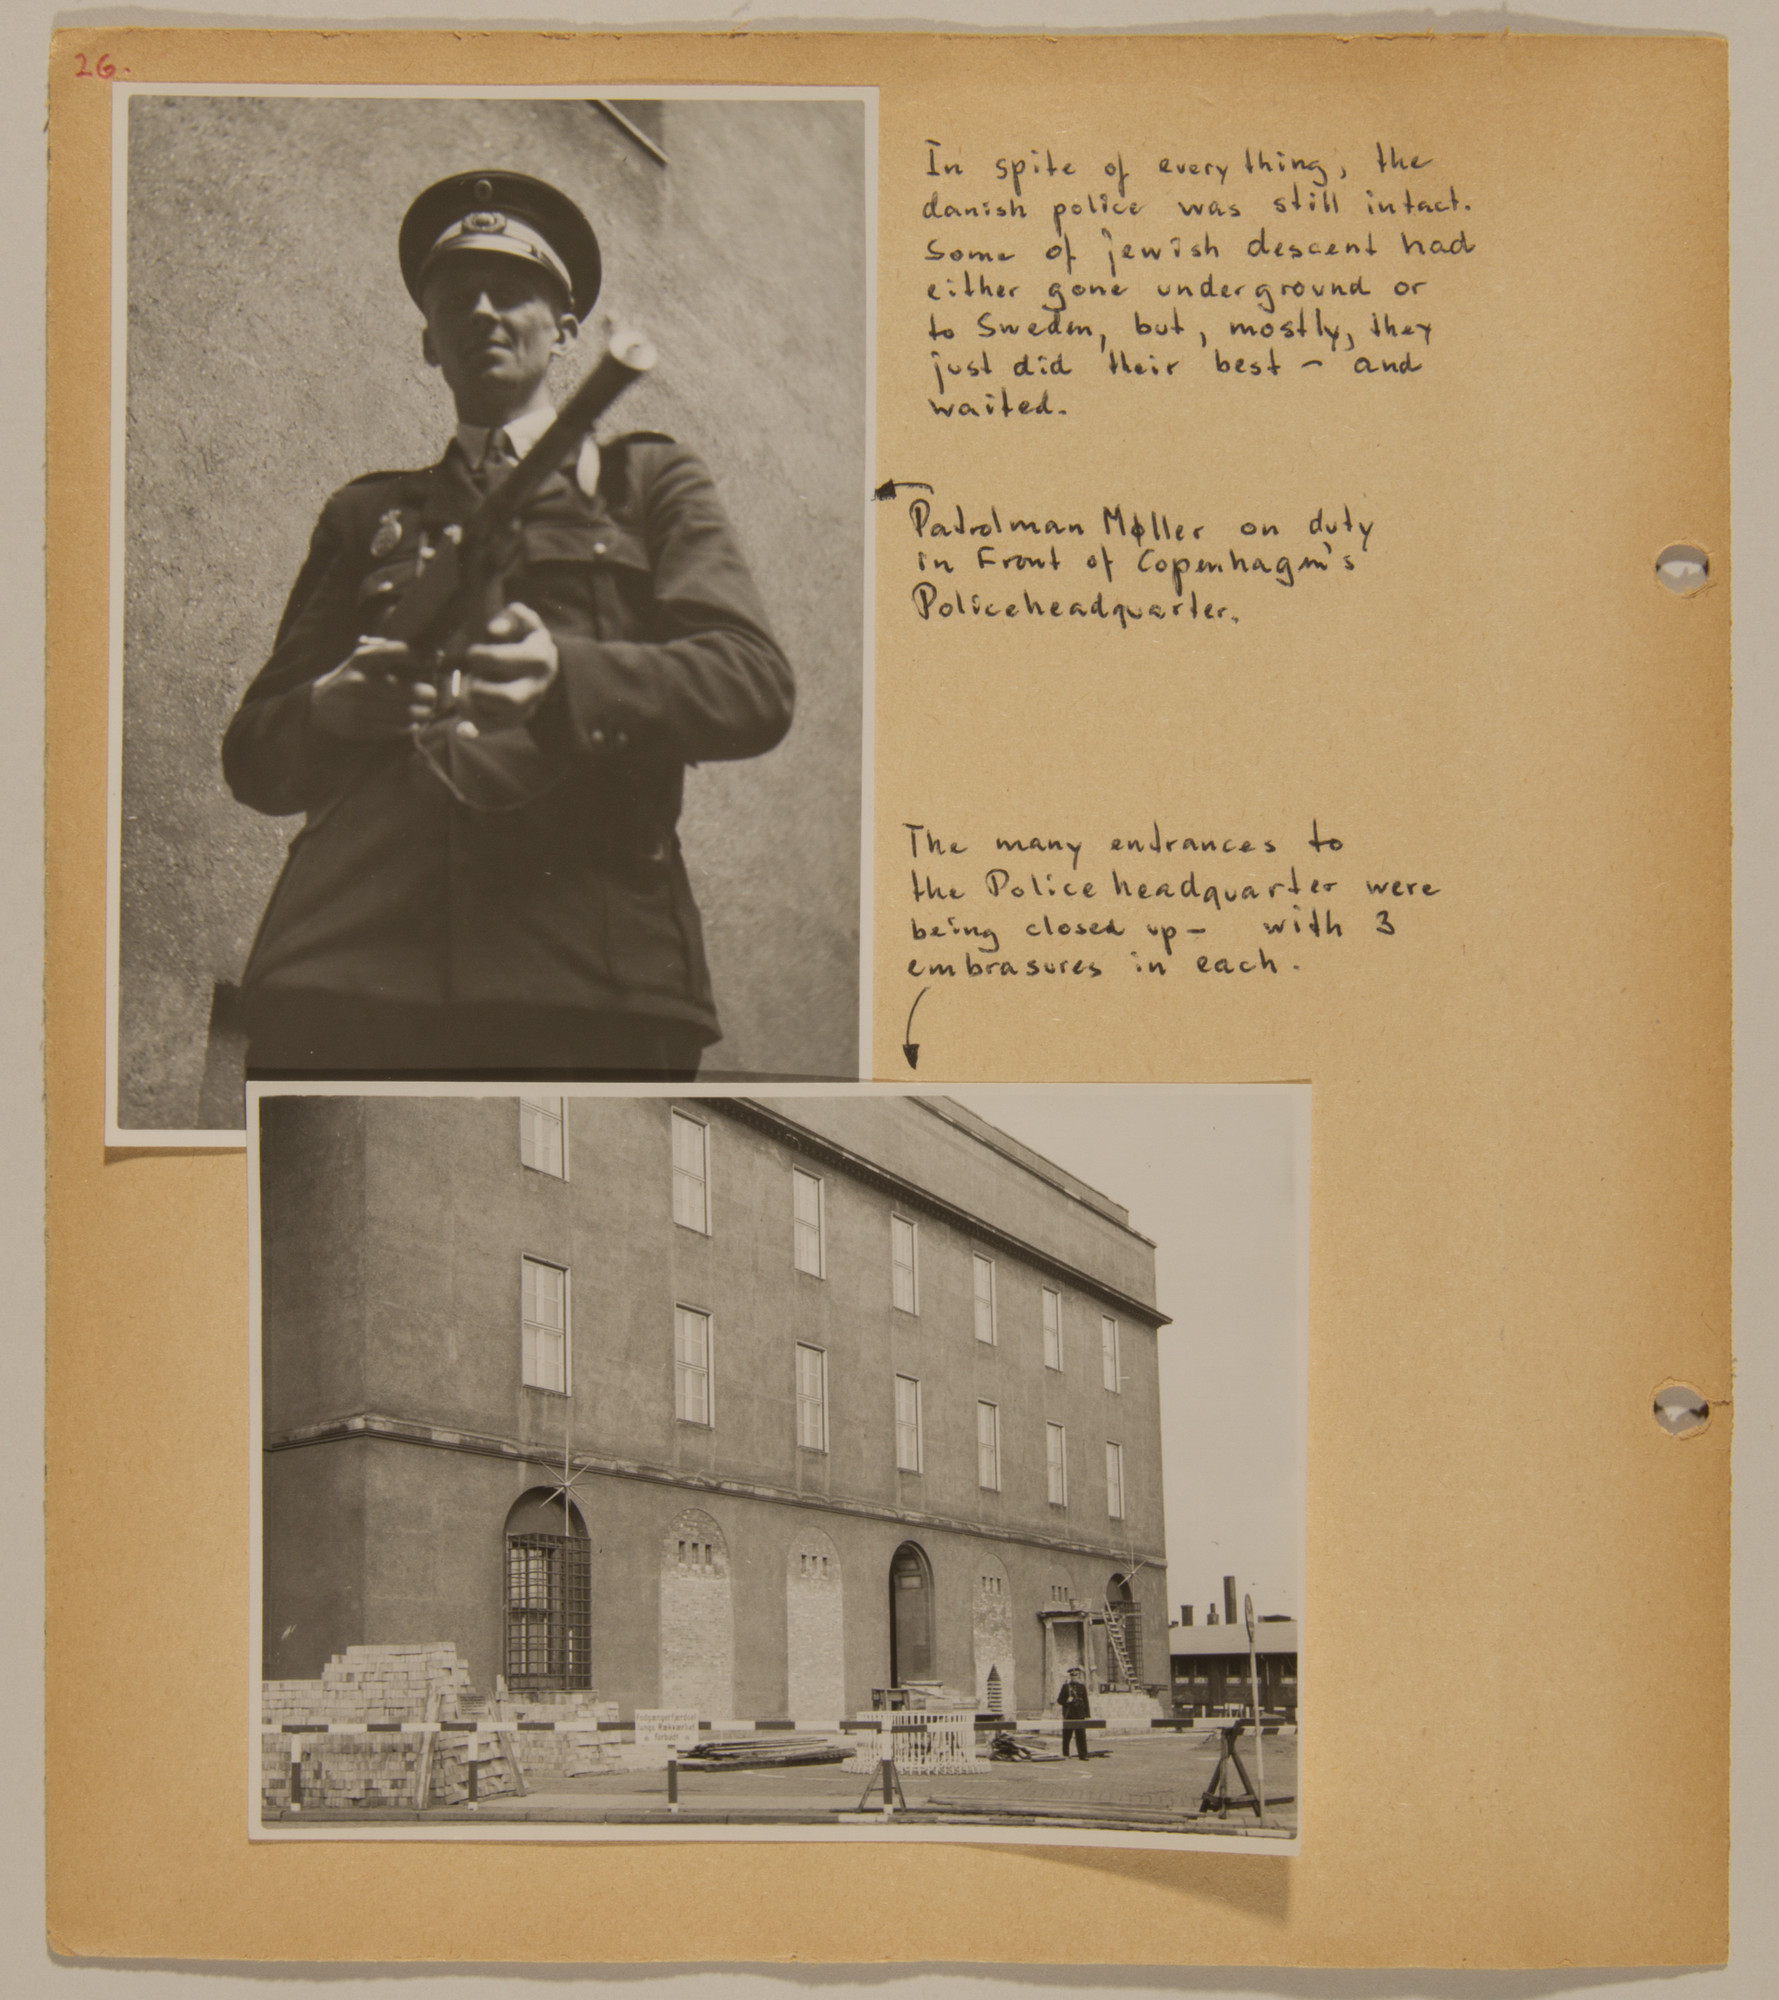 Page from volume four of a set of scrapbooks compiled by Bjorn Sibbern, a Danish policeman and resistance member, documenting the German occupation of Denmark.  This page shows photographs of a Danish policeman and the police headquarters.